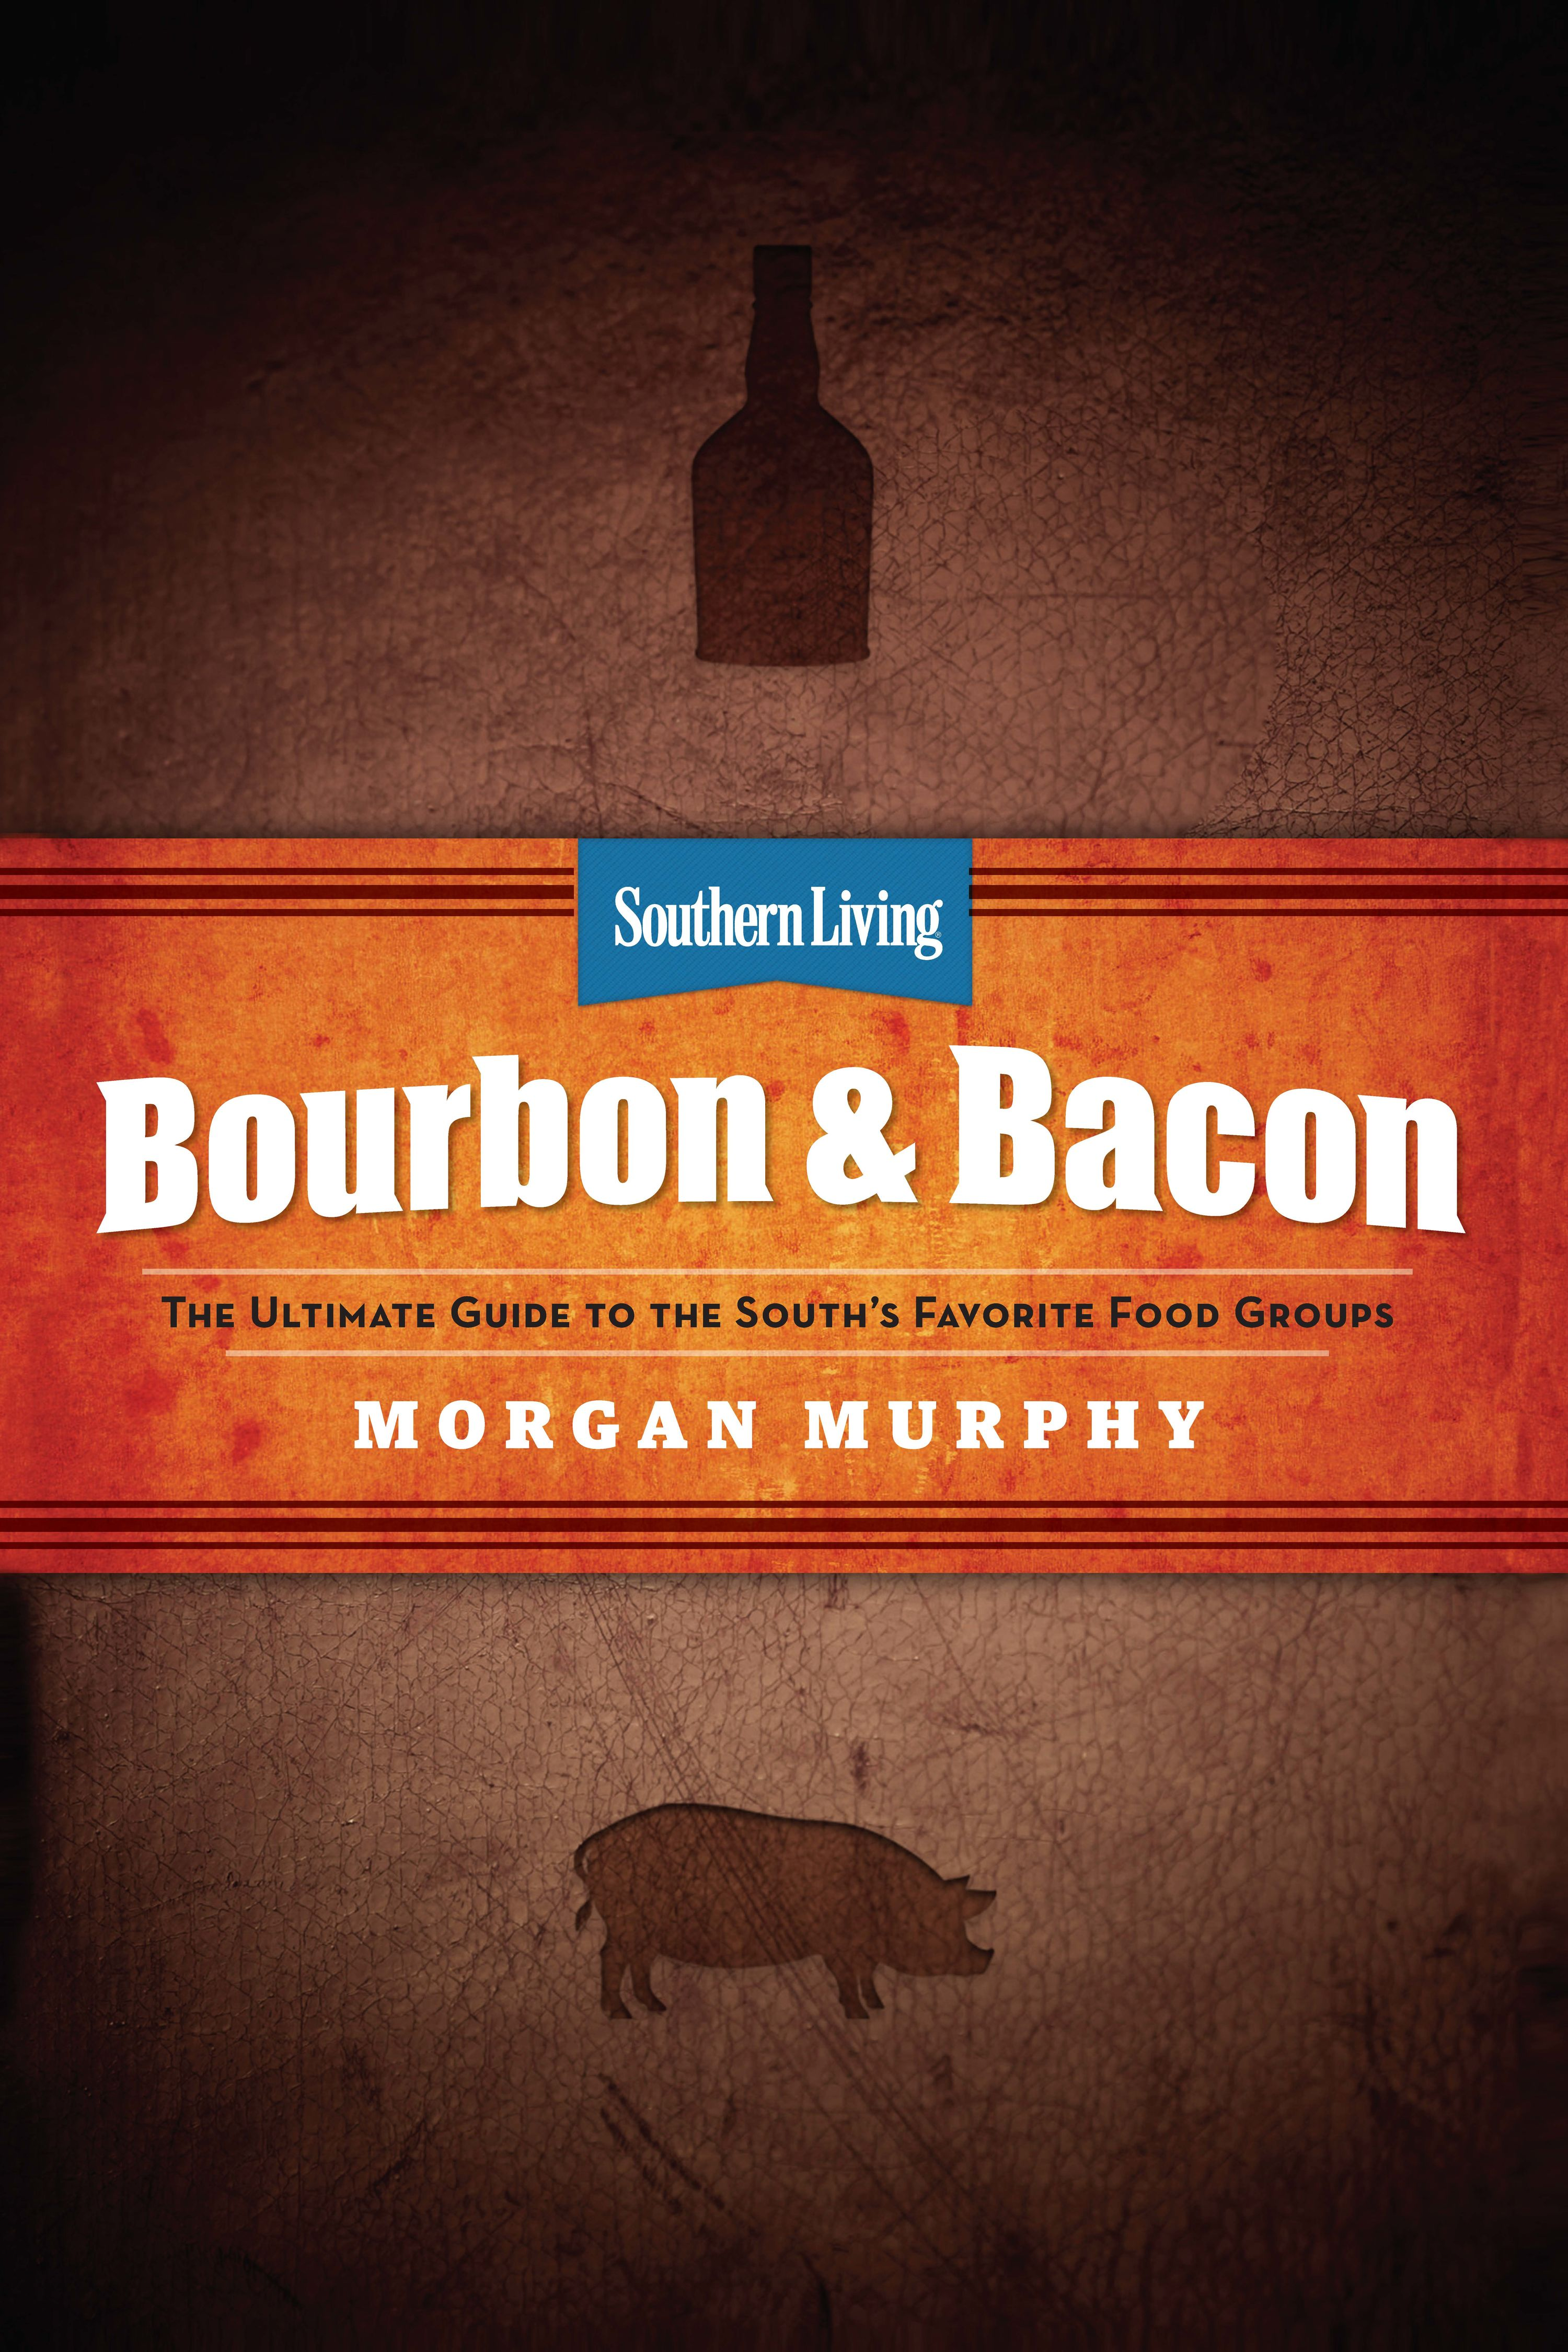 Bacon & Bourbon, A Blessing to Us All